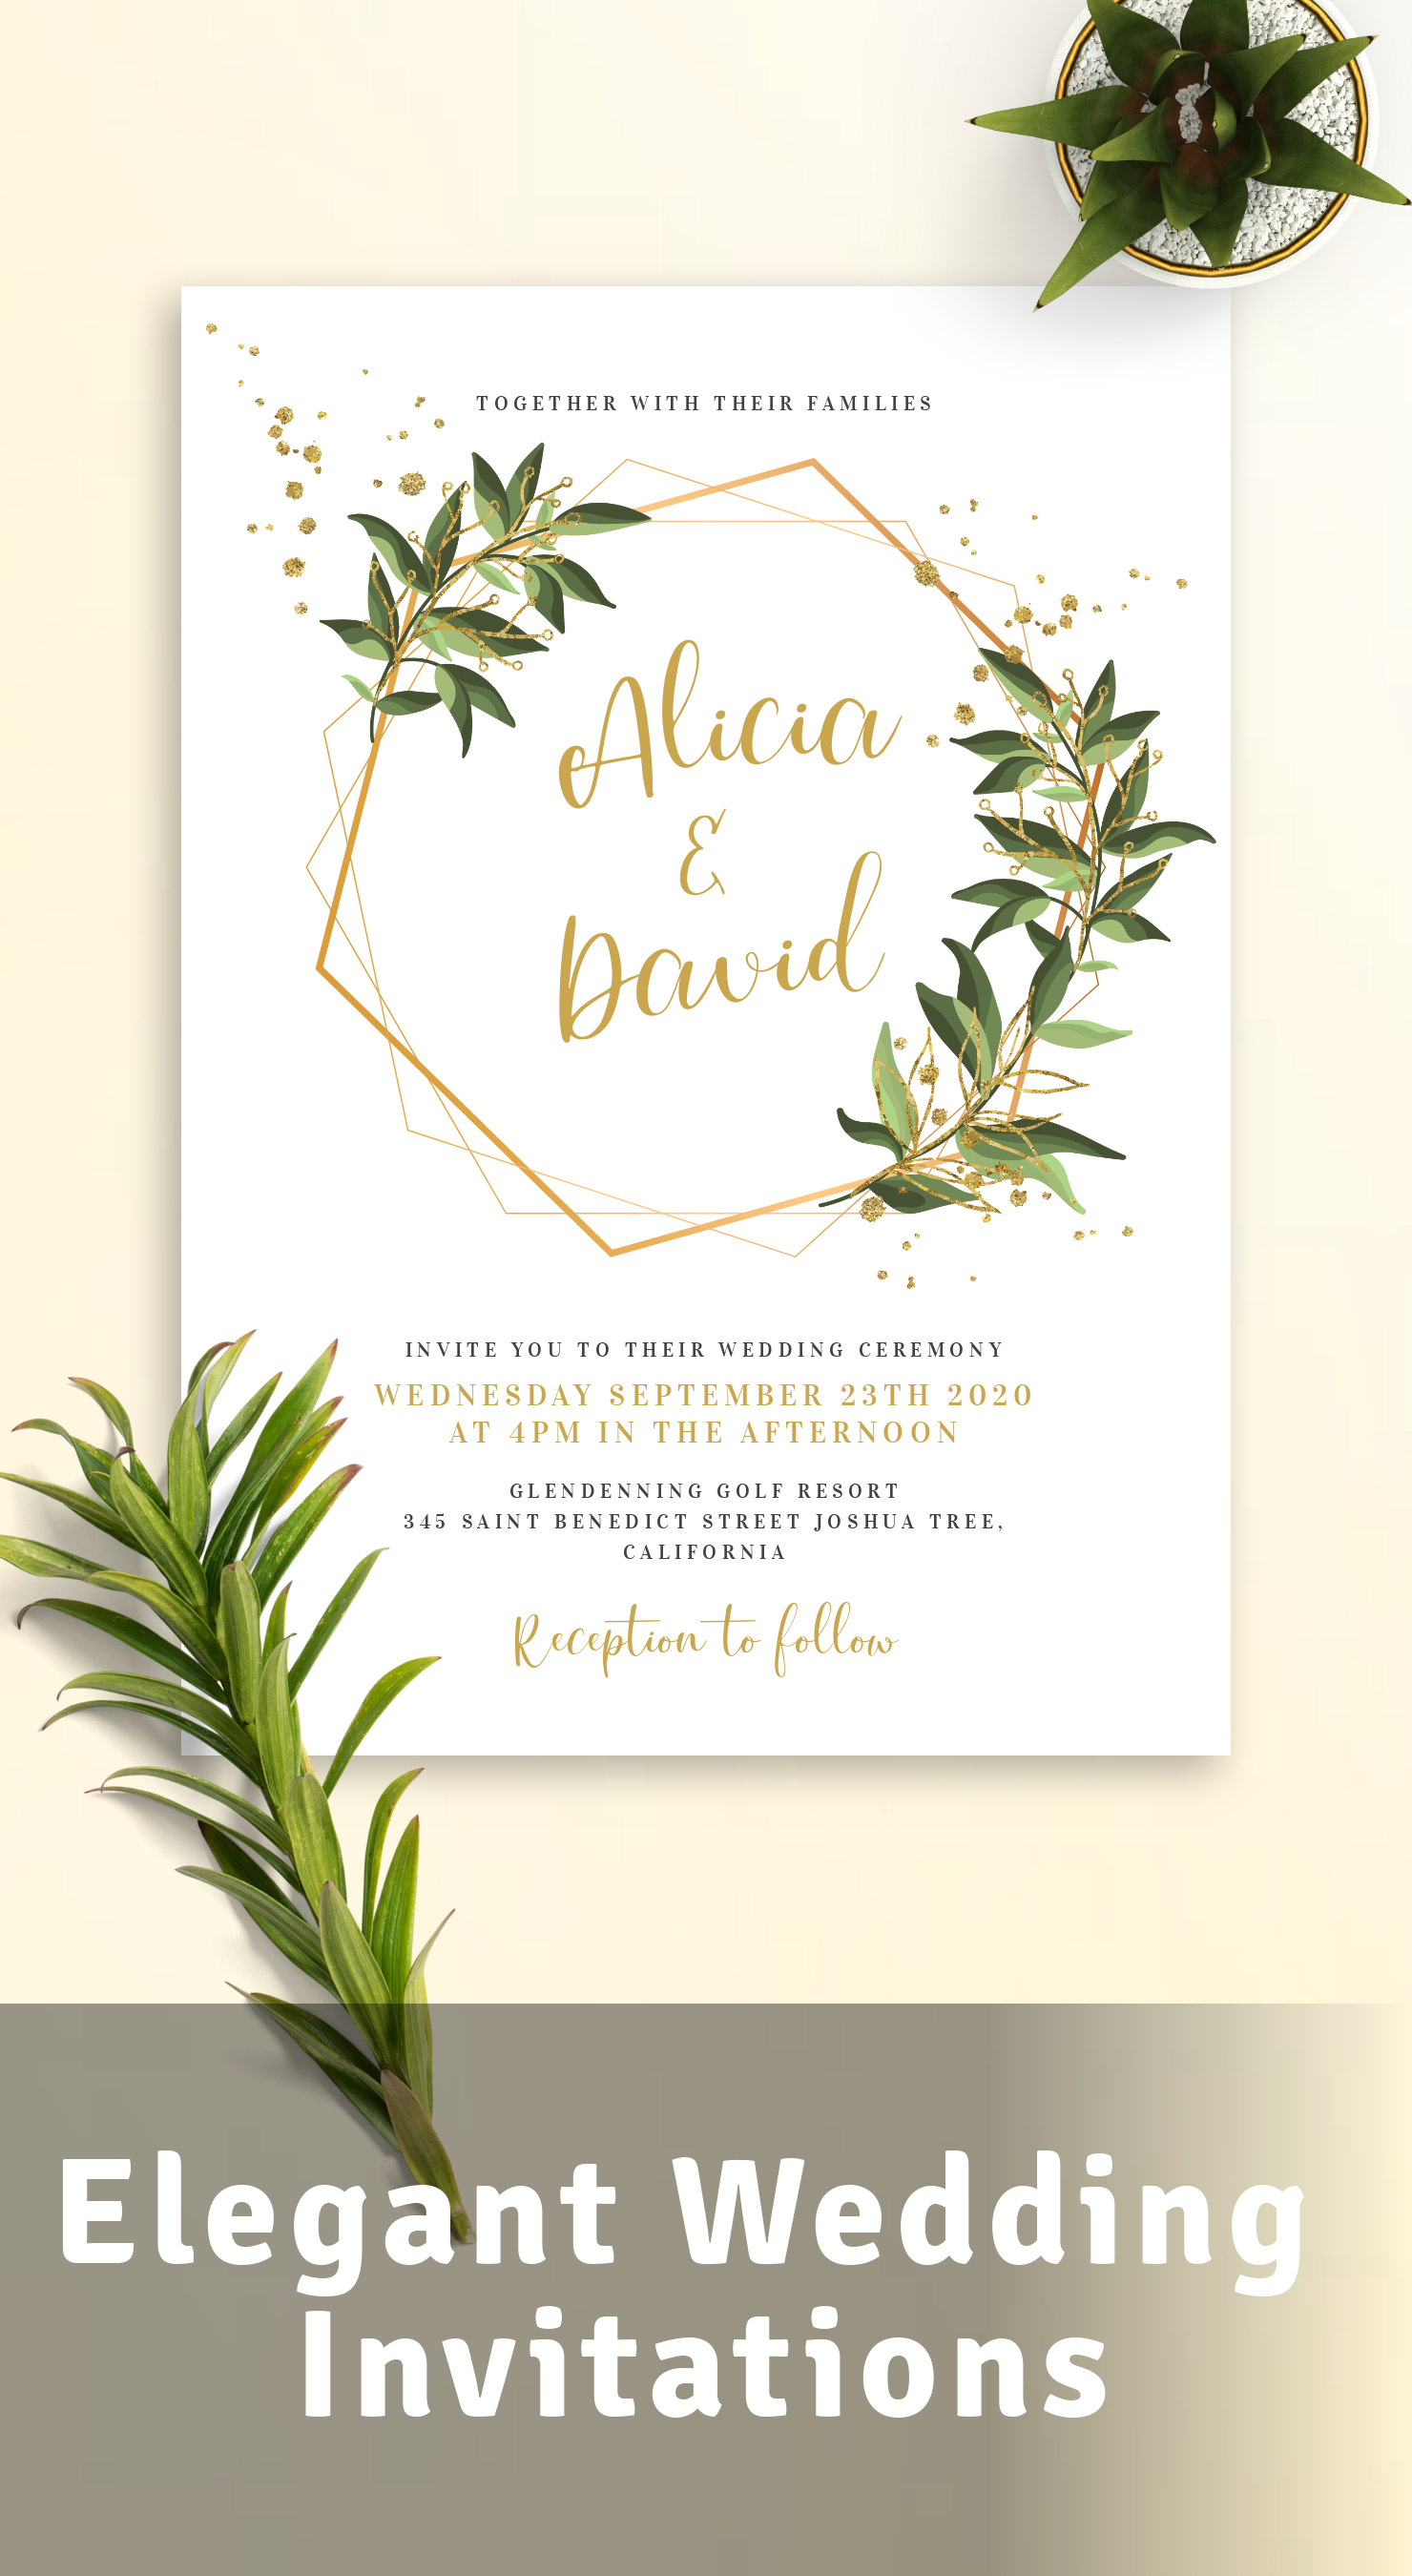 Custom Elegant Wedding Invitations